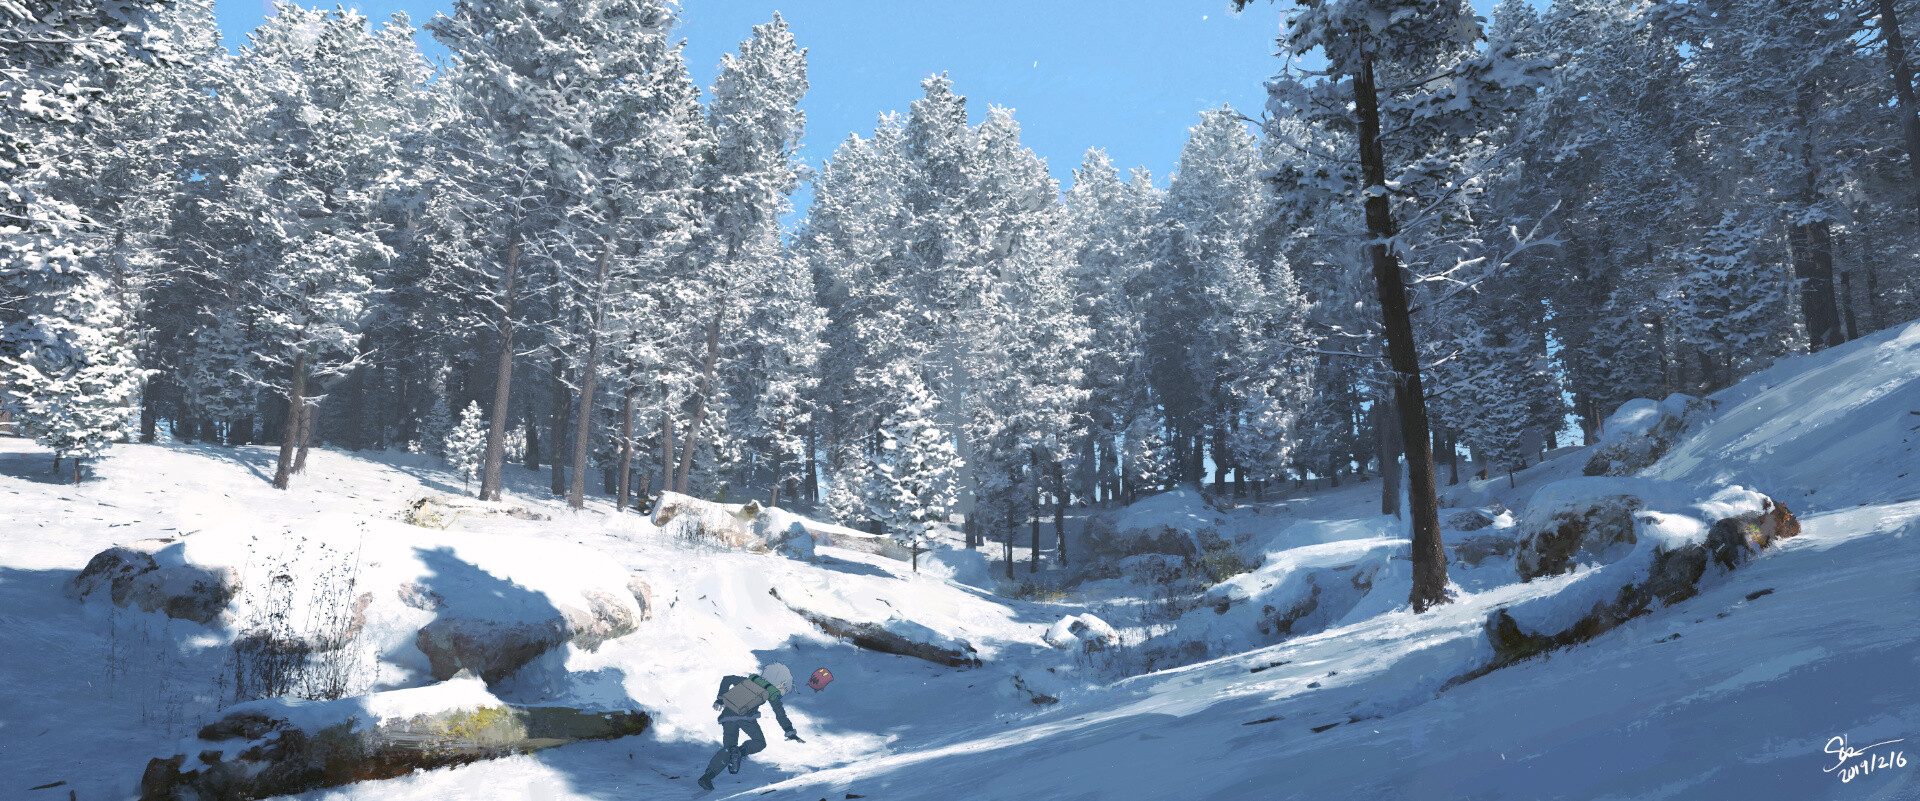 Continuing from West Route tunnel, Azure finds himself in a snowy forest.